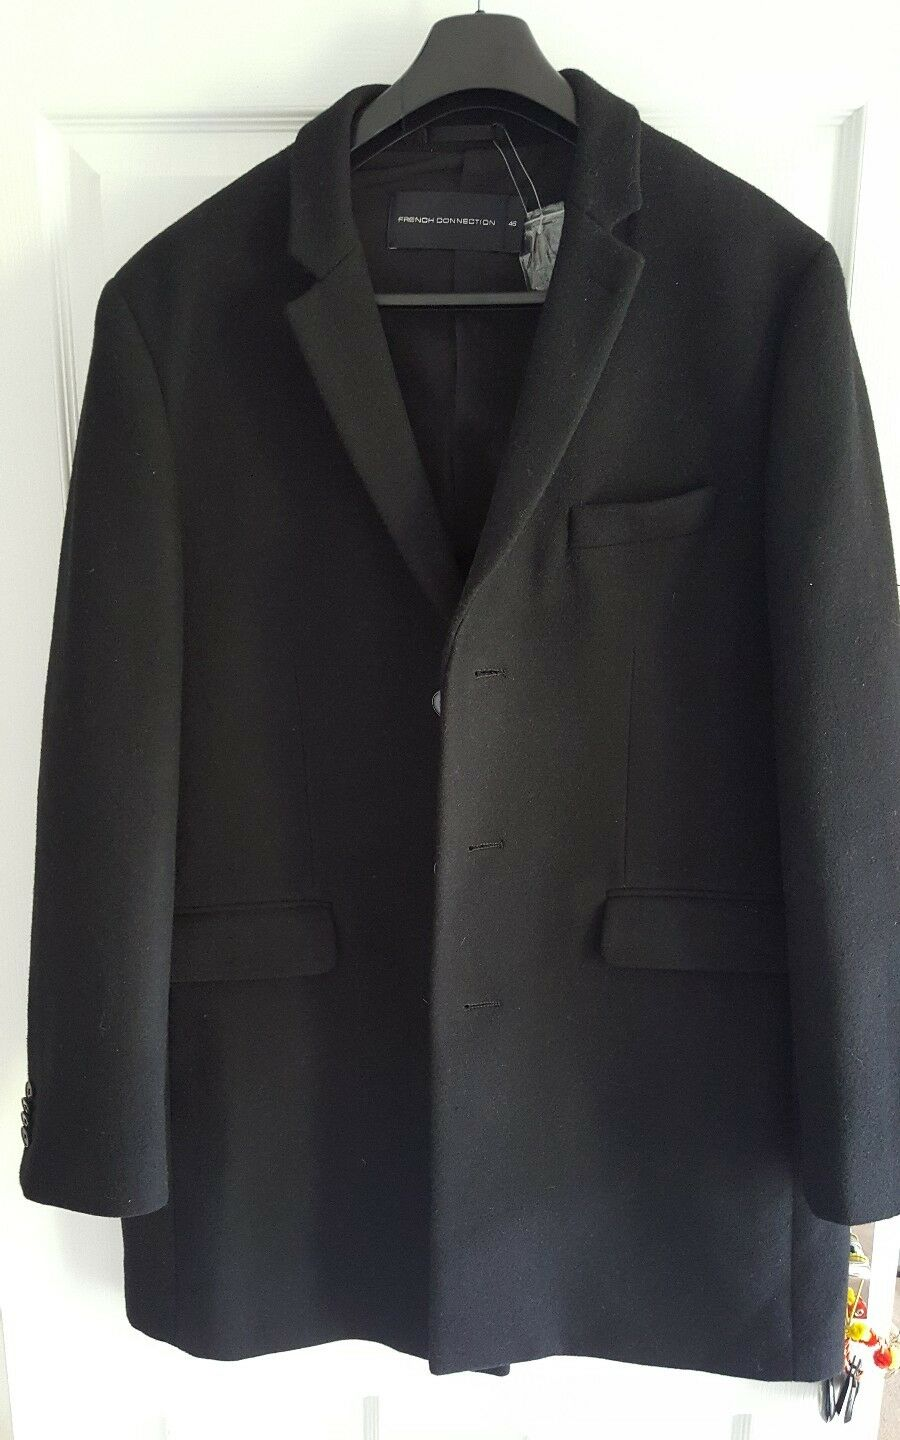 996e8ae000db French Connection mens coat size 46 new FCUK odkphk16696-Coats ...